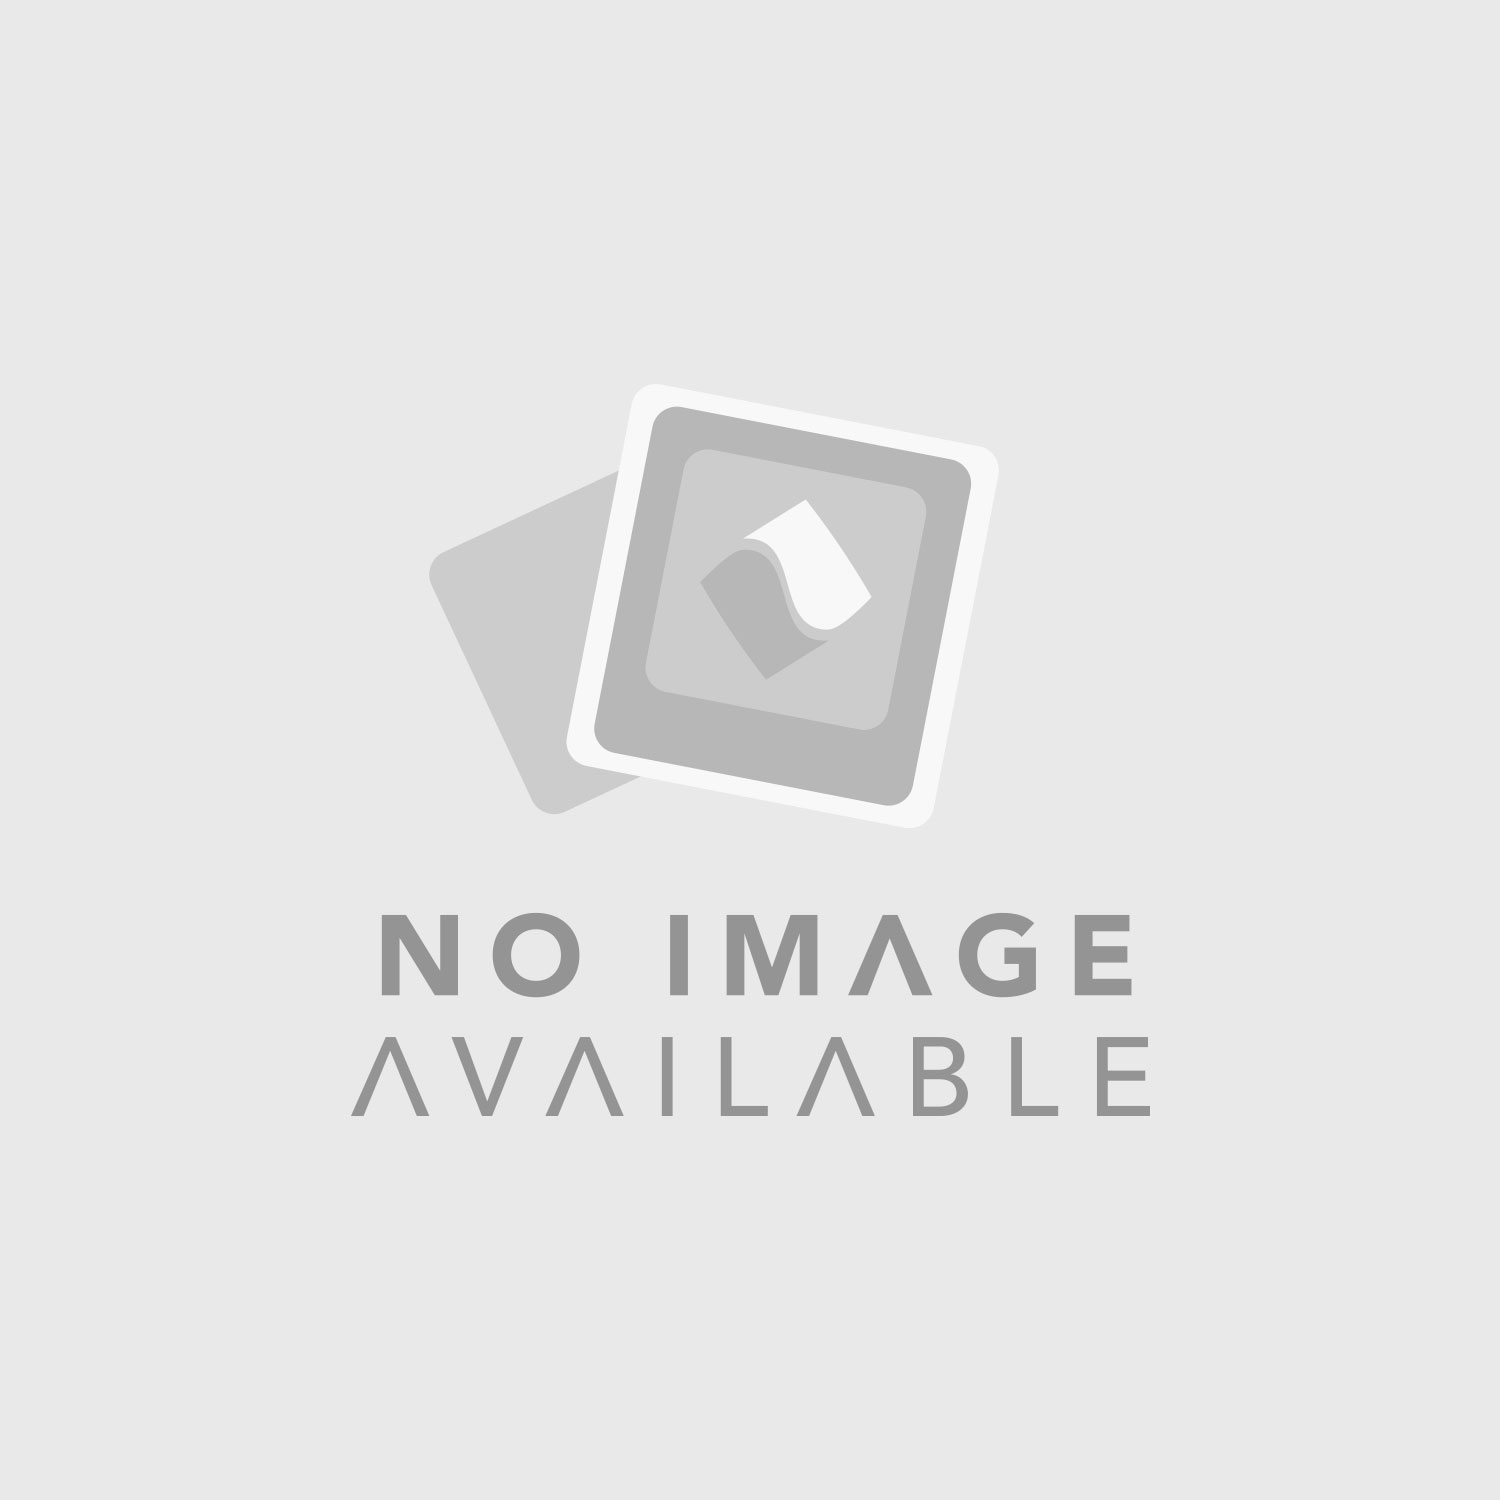 Avid Pro Tools 1-Year Subscription Upgrade/Reinstatement (Boxed, Student/Teacher)